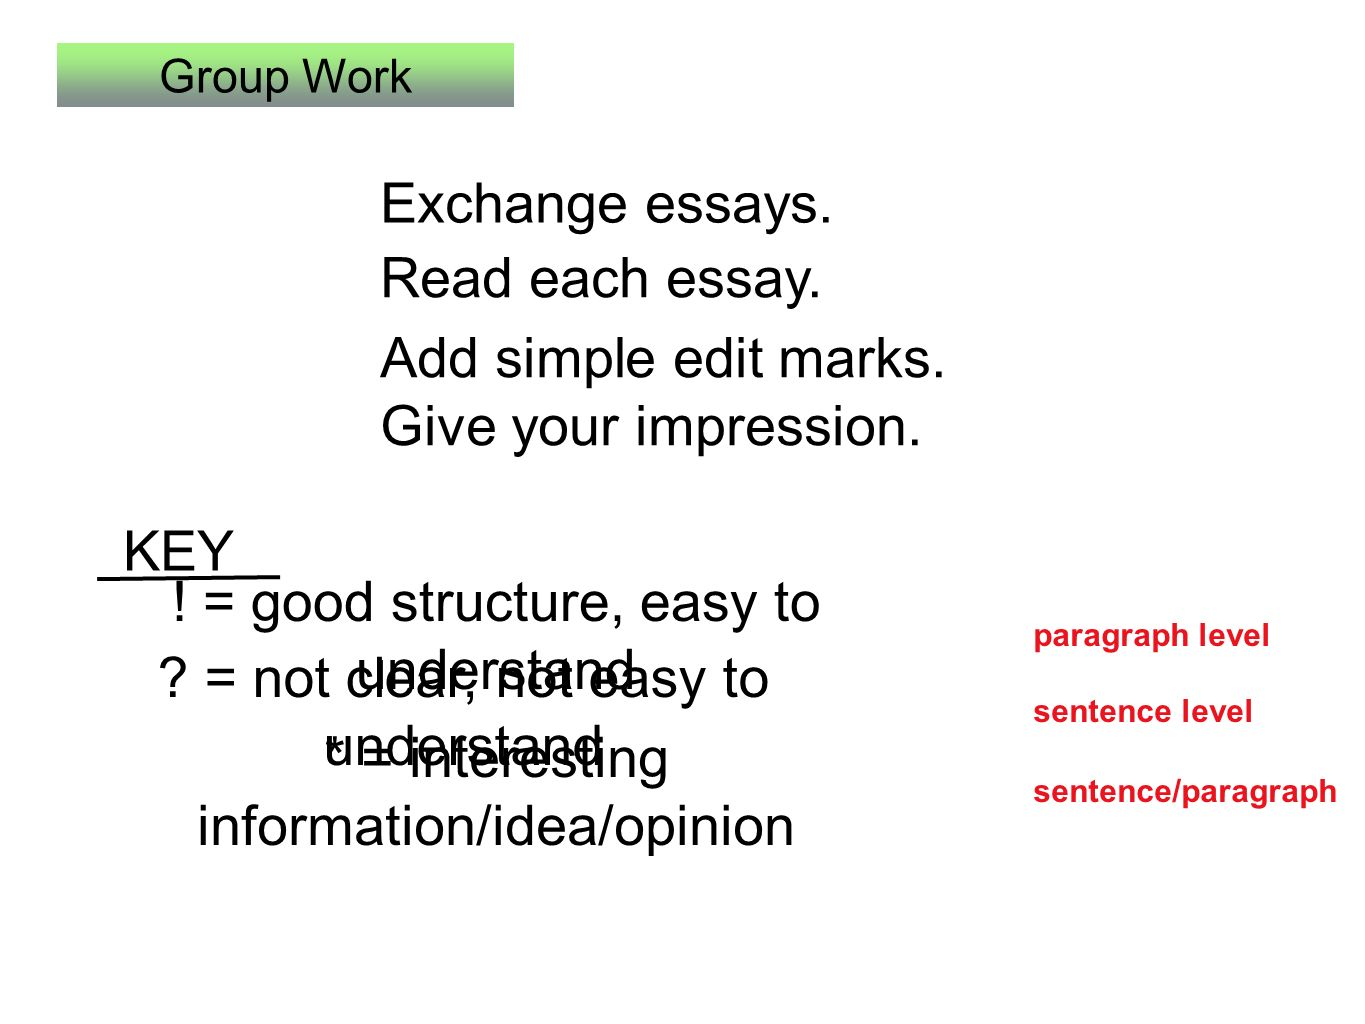 Lesson Supporting Paragraphs Todays Class  A Group Work  Essay  Group Work Exchange Essays Add Simple Edit Marks Business Plan Writer Contract also Paraphrasing Website  Critical Essay Thesis Statement